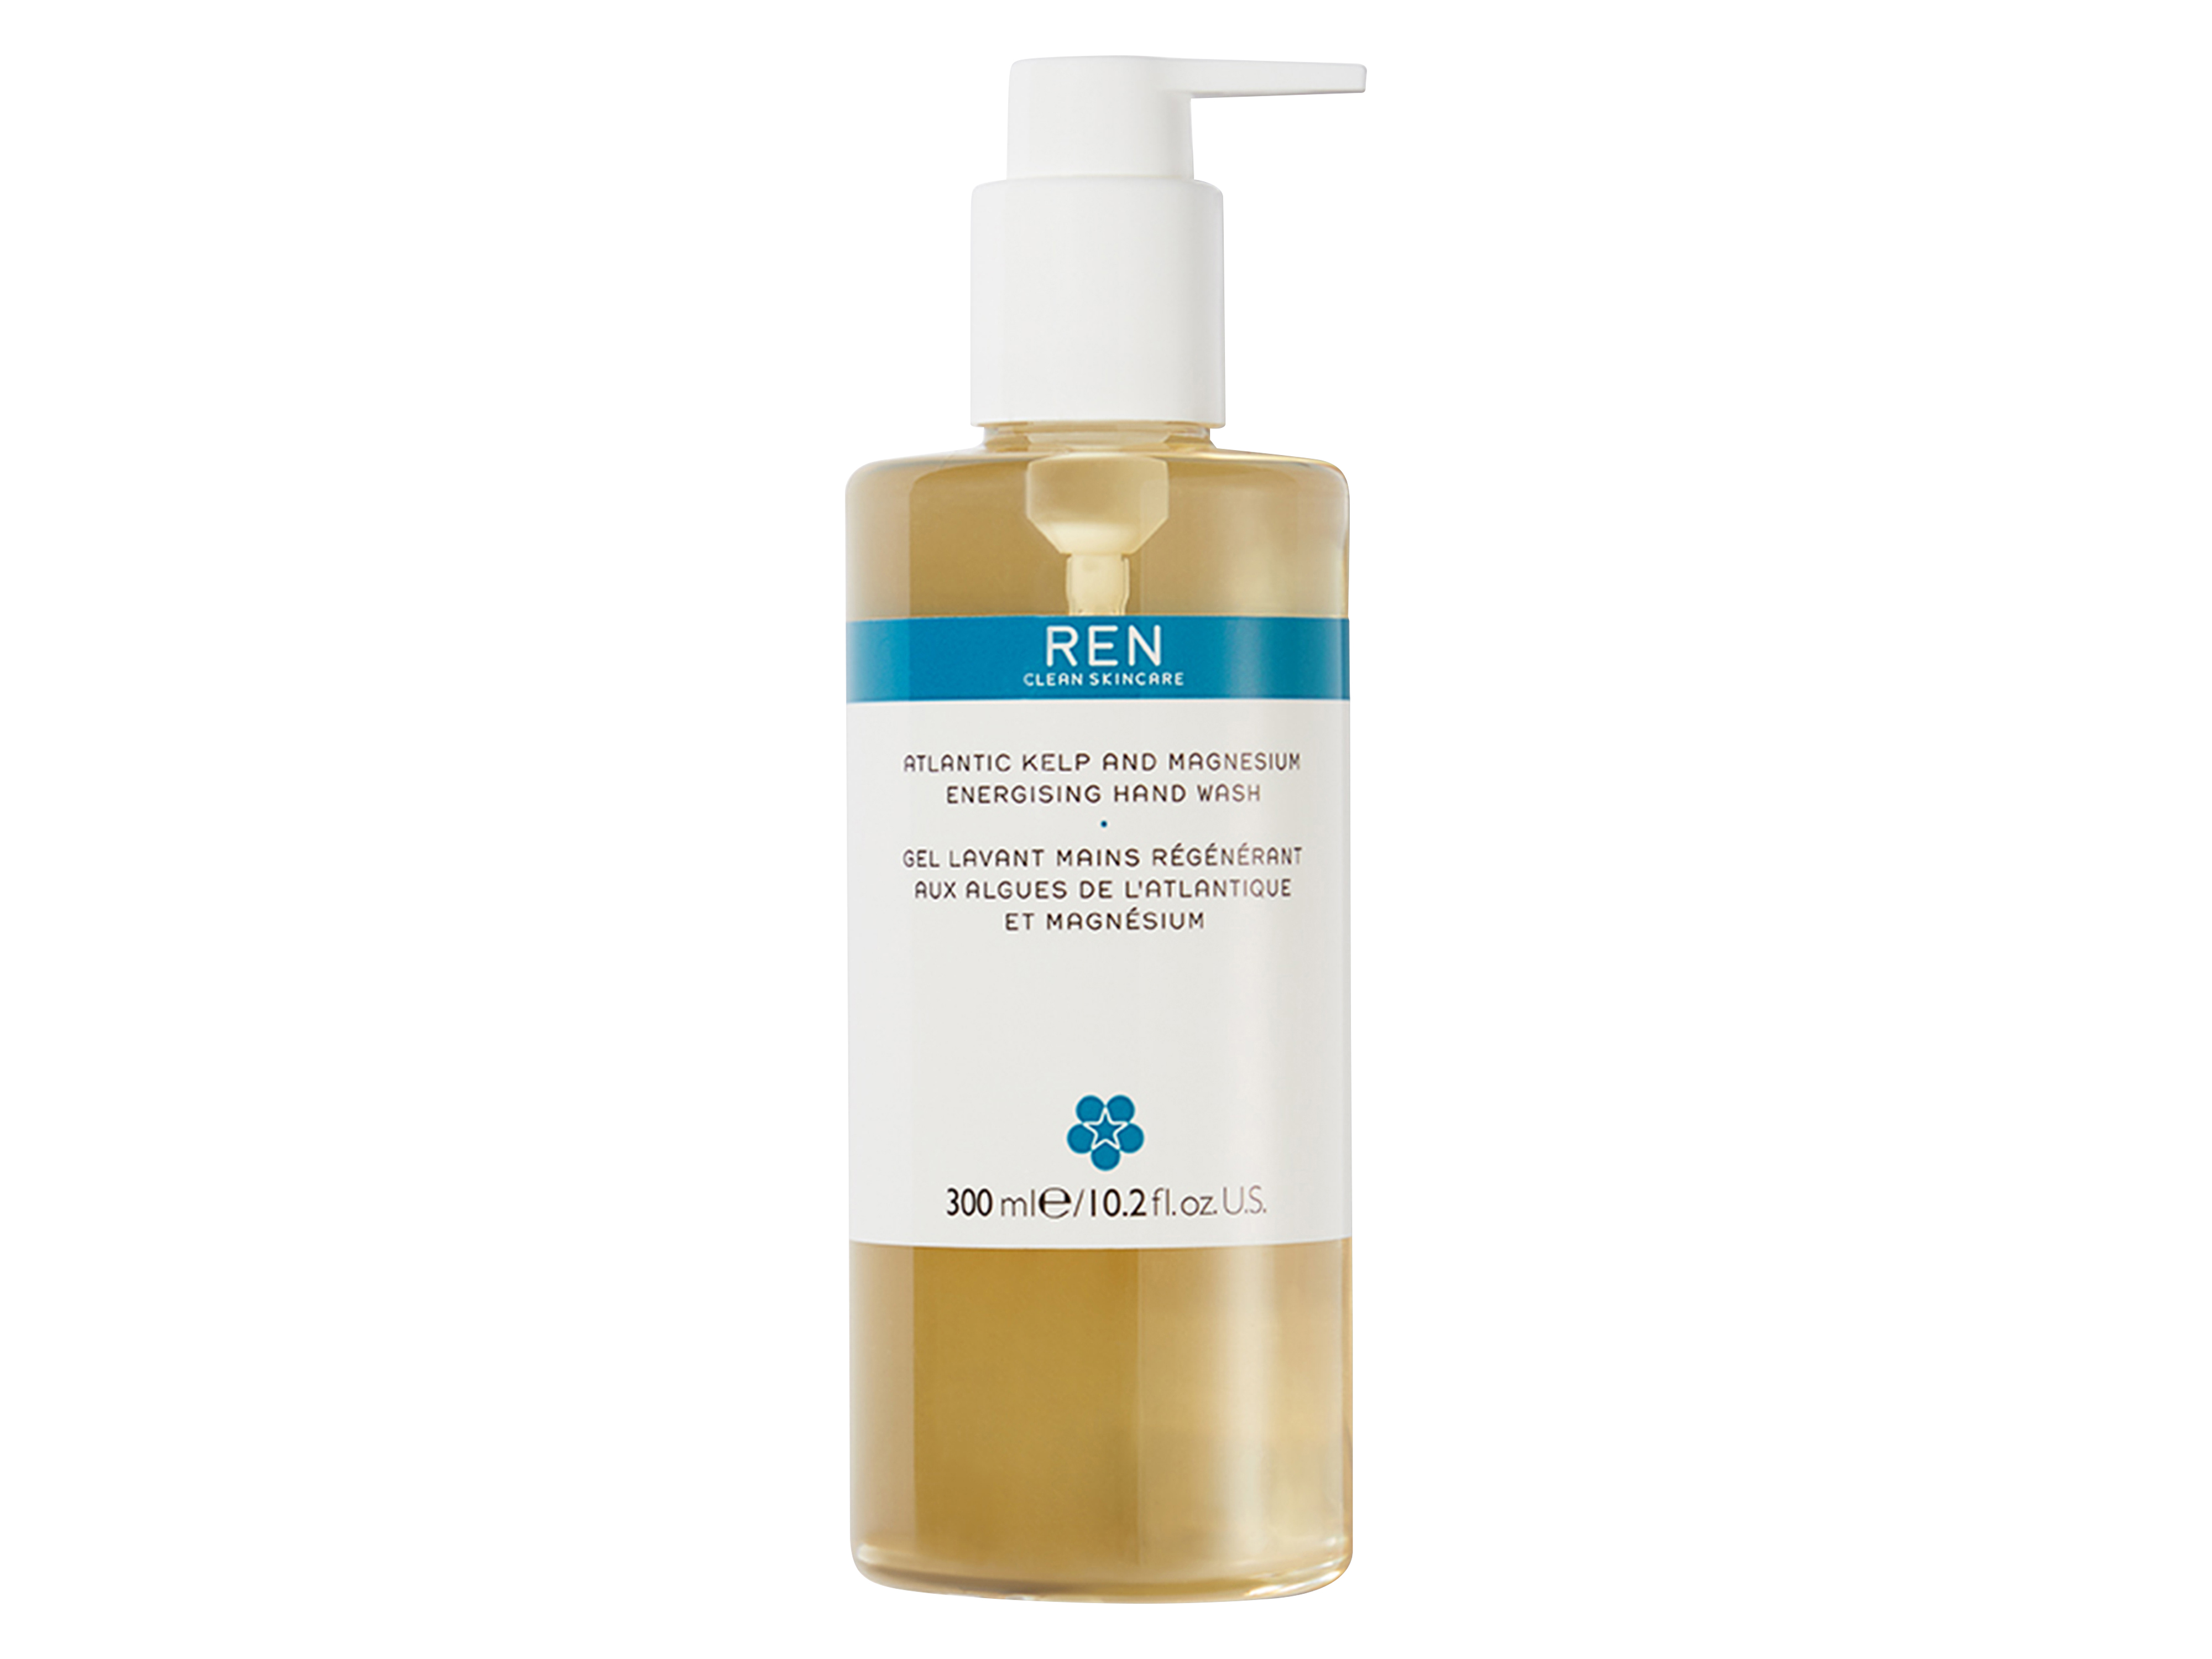 REN Atlantic Kelp And Magnesium Energising Hand Wash, 300 ml